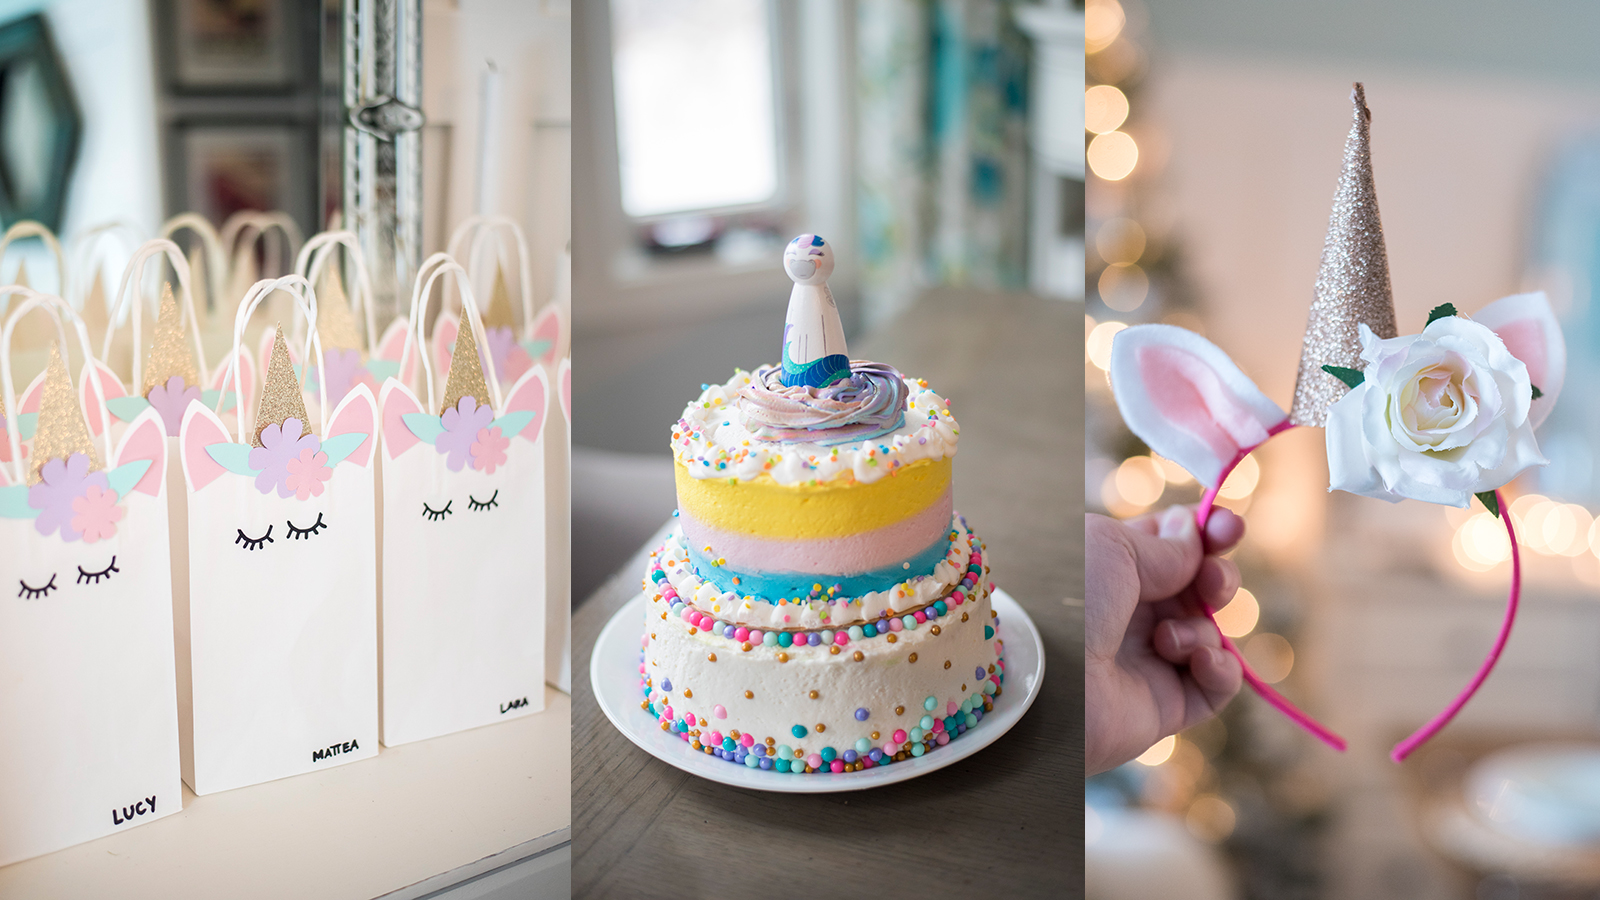 DIY Unicorn Party Ideas - unicorn treat bags, unicorn cake, unicorn headband